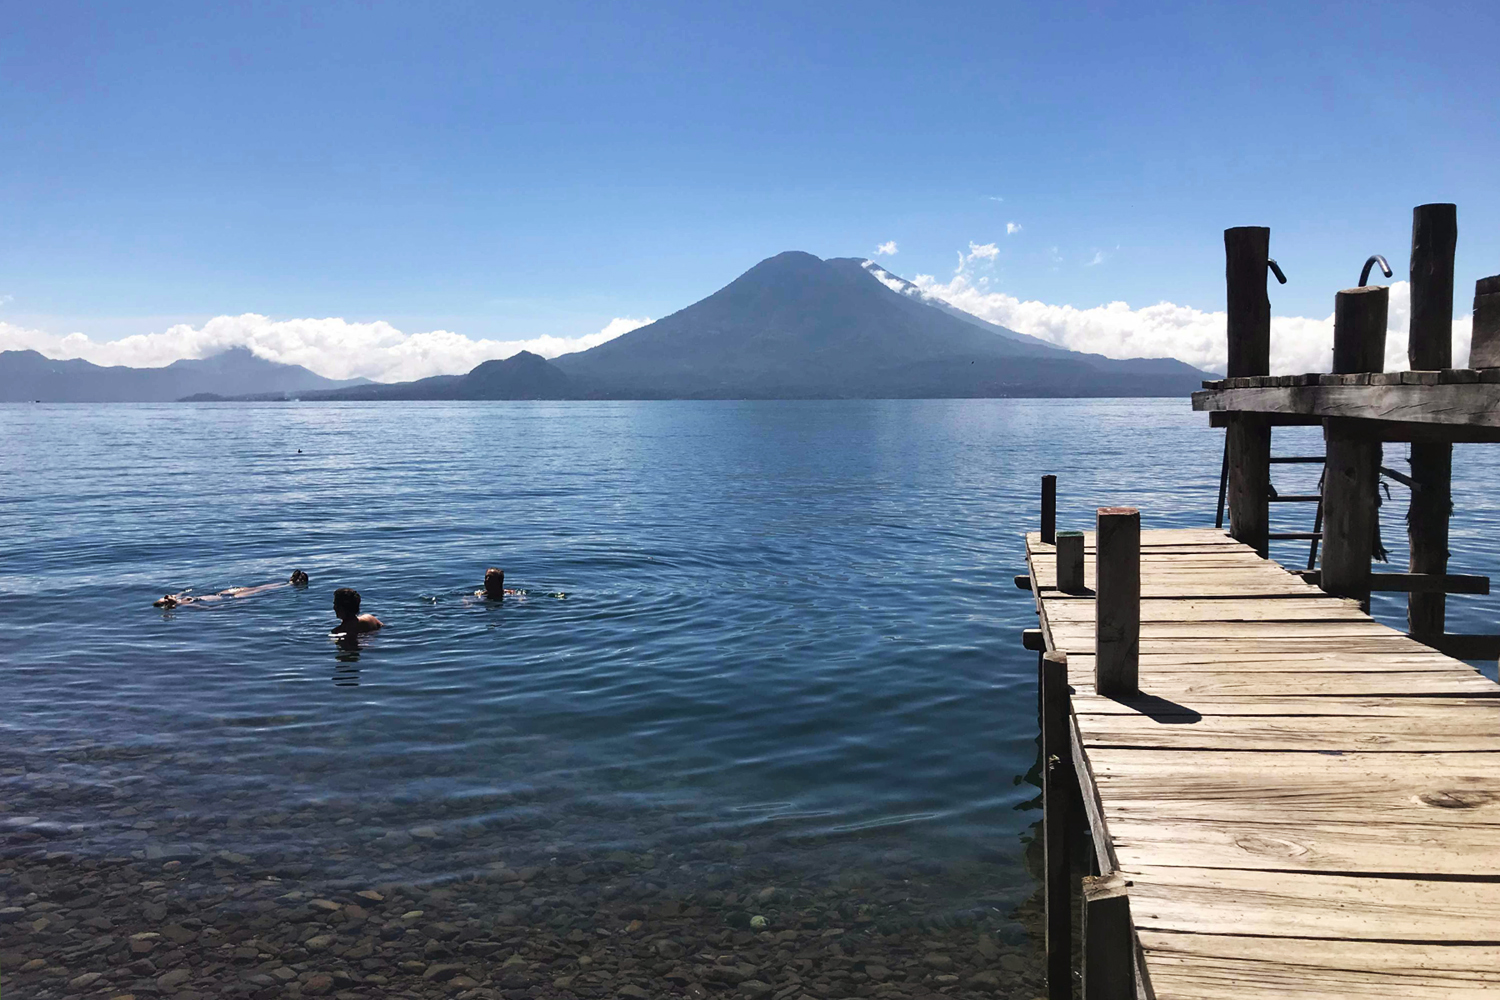 Relaxing in Lake Atitlan with Sophie, Lisa, and Romy - November 6